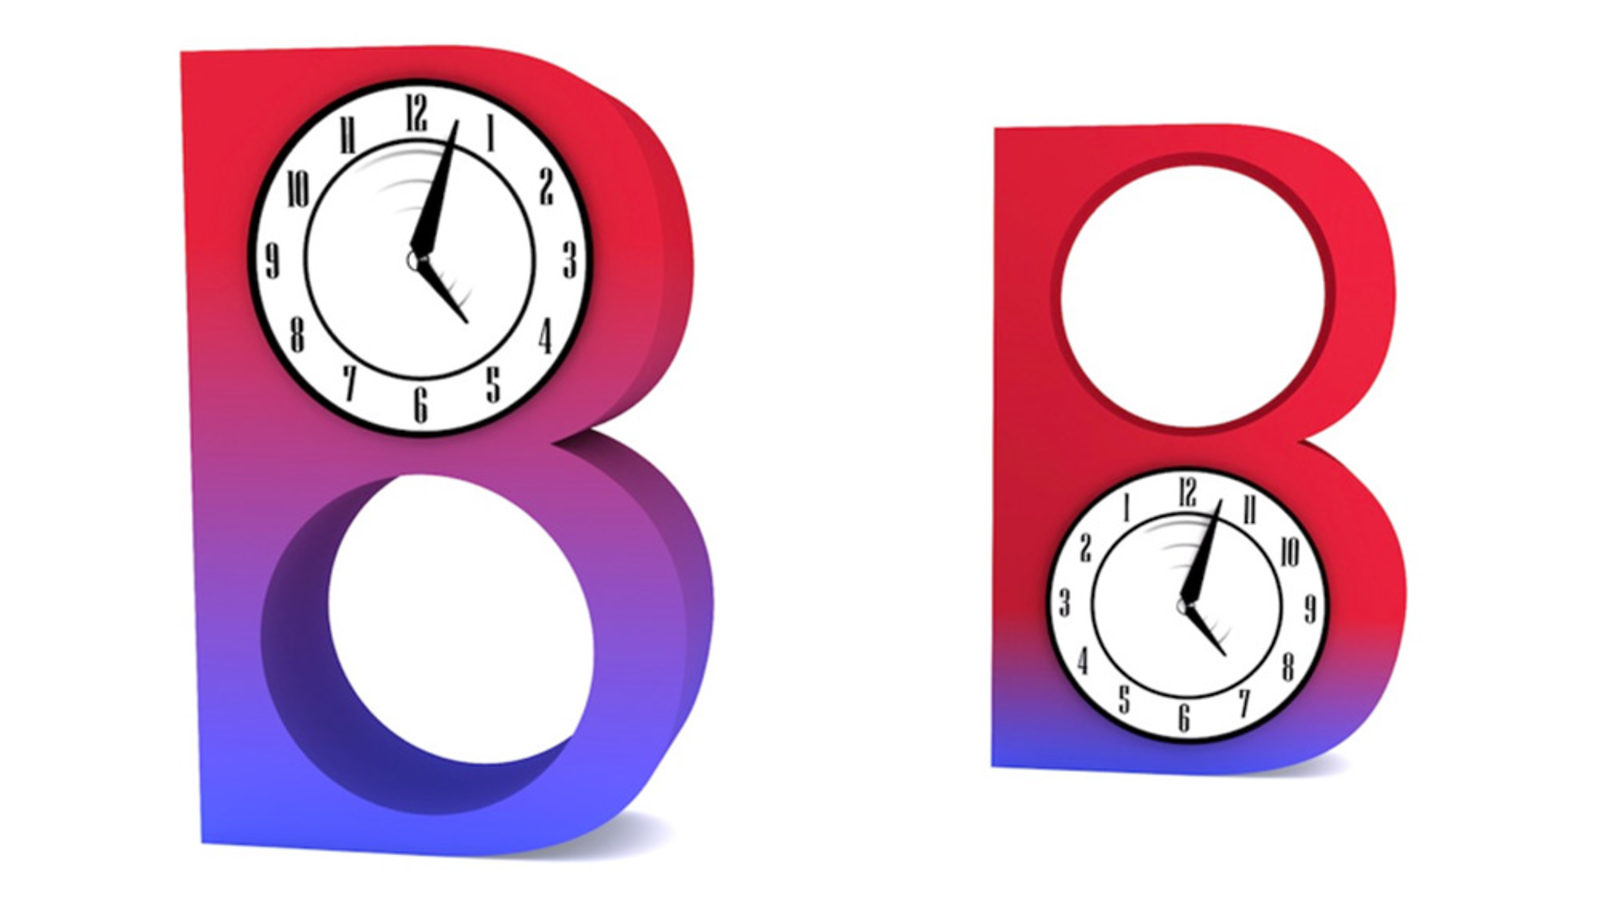 """Illustration of """"BB"""" red and blue gradient with clocks inside letterforms"""